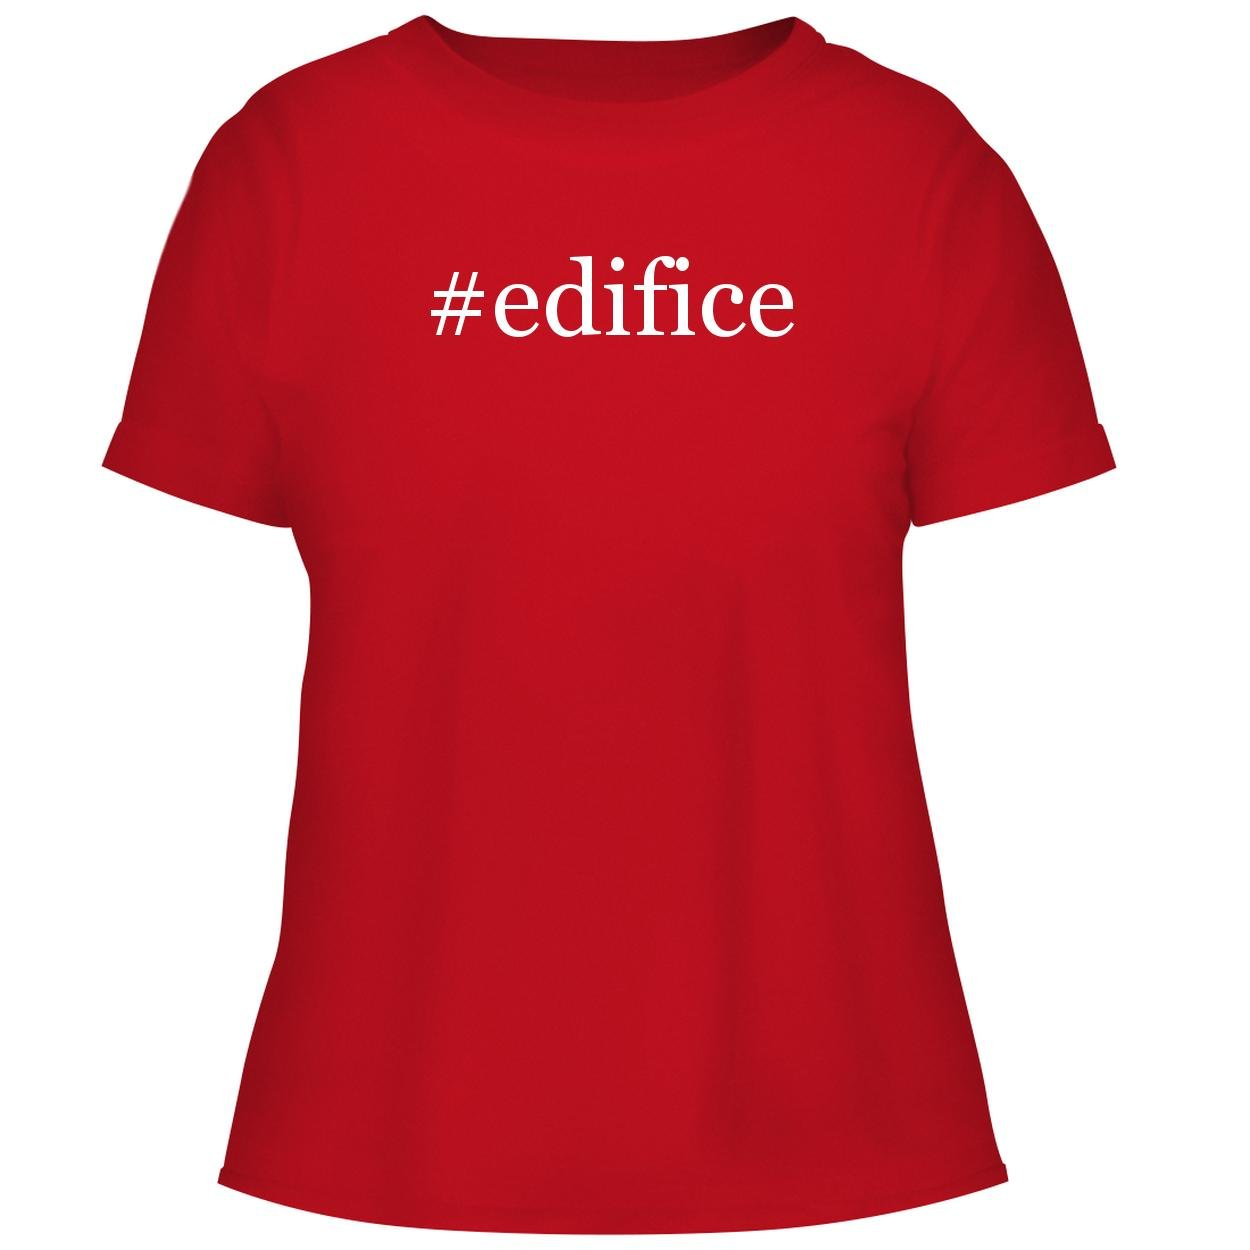 BH Cool Designs #Edifice - Cute Women's Graphic Tee, Red, Small